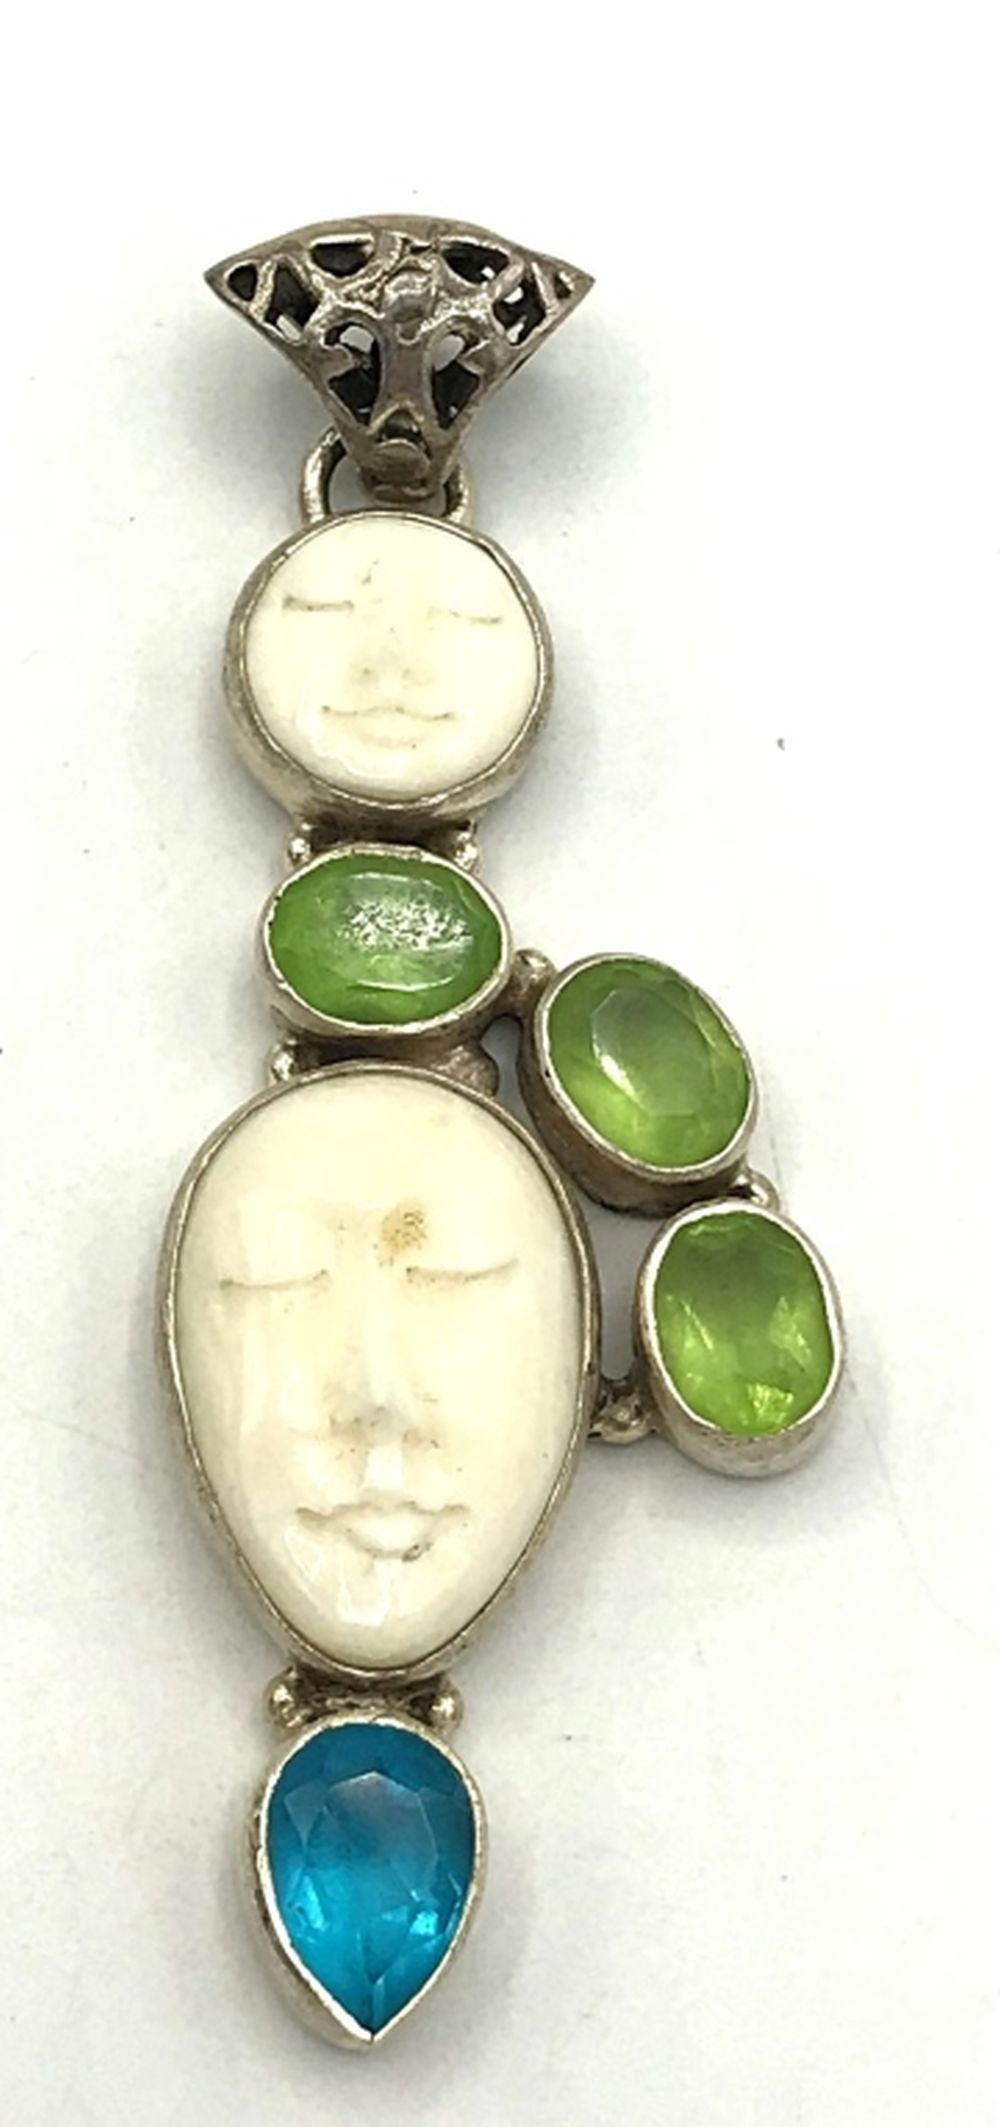 MOON STONE FACE PENDANT STERLING